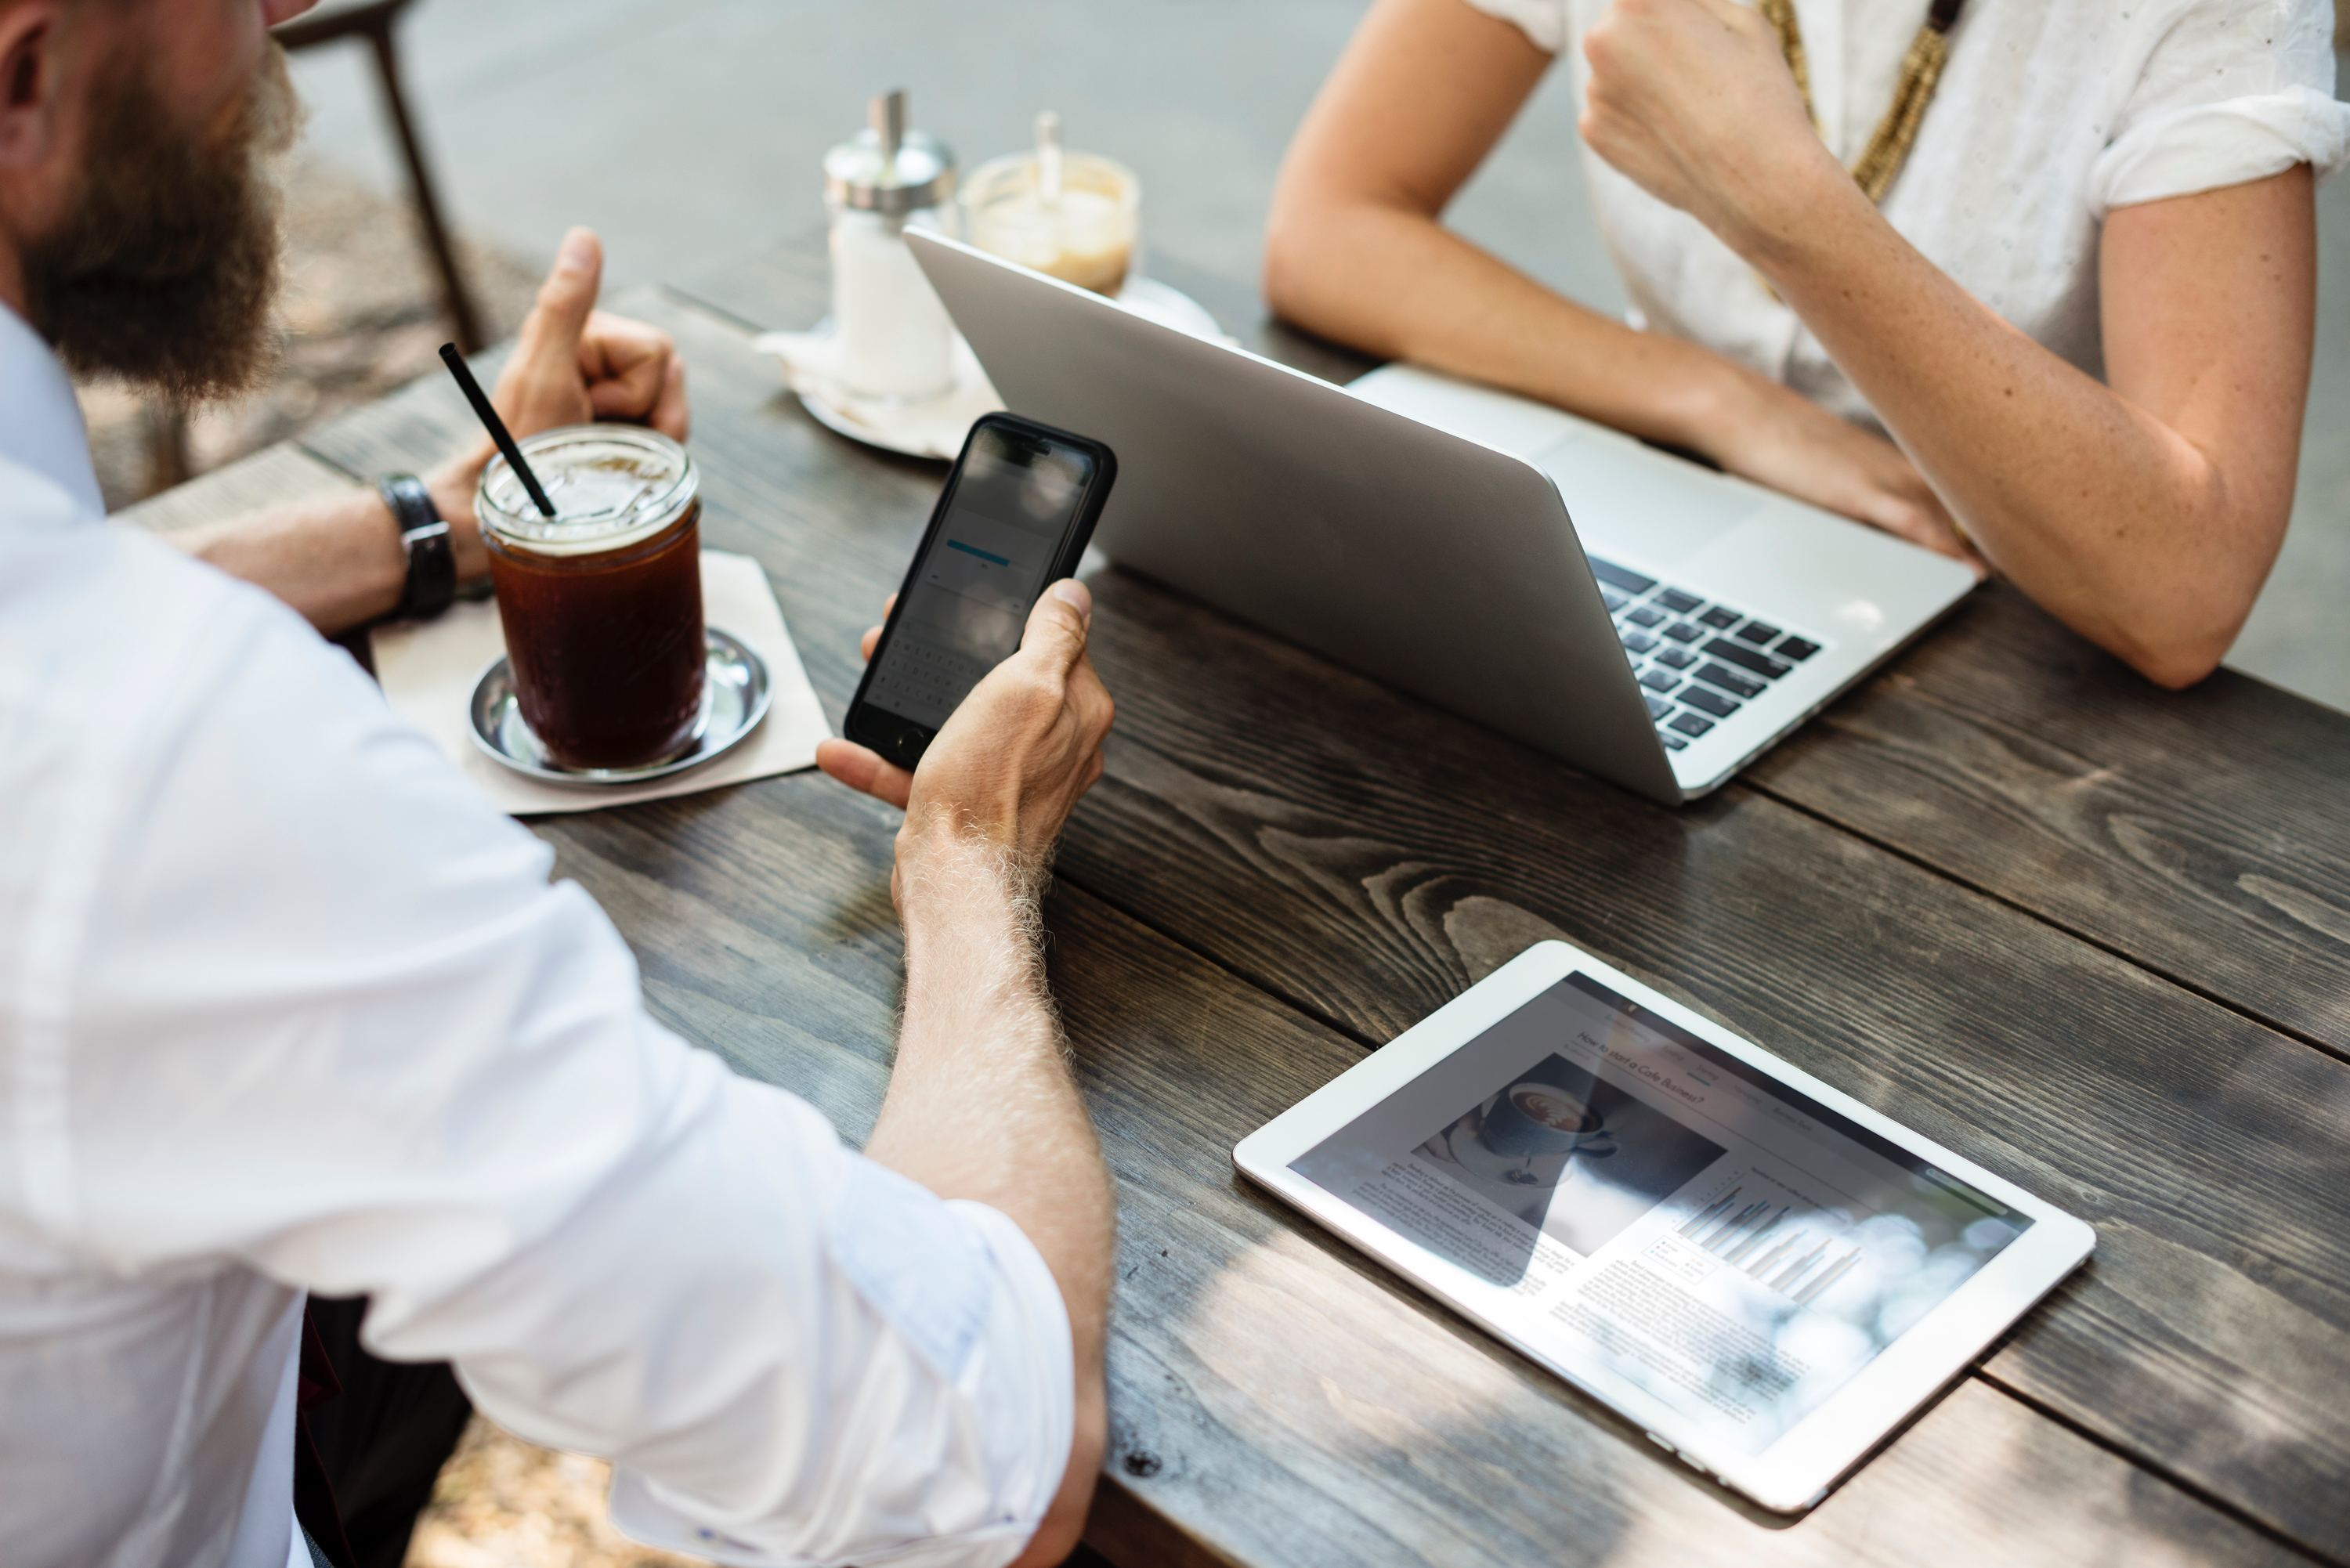 Why budget for your business? If you have someone telling you that your business needs a budget, but you think you know better - here are some tips on why you might be wrong!